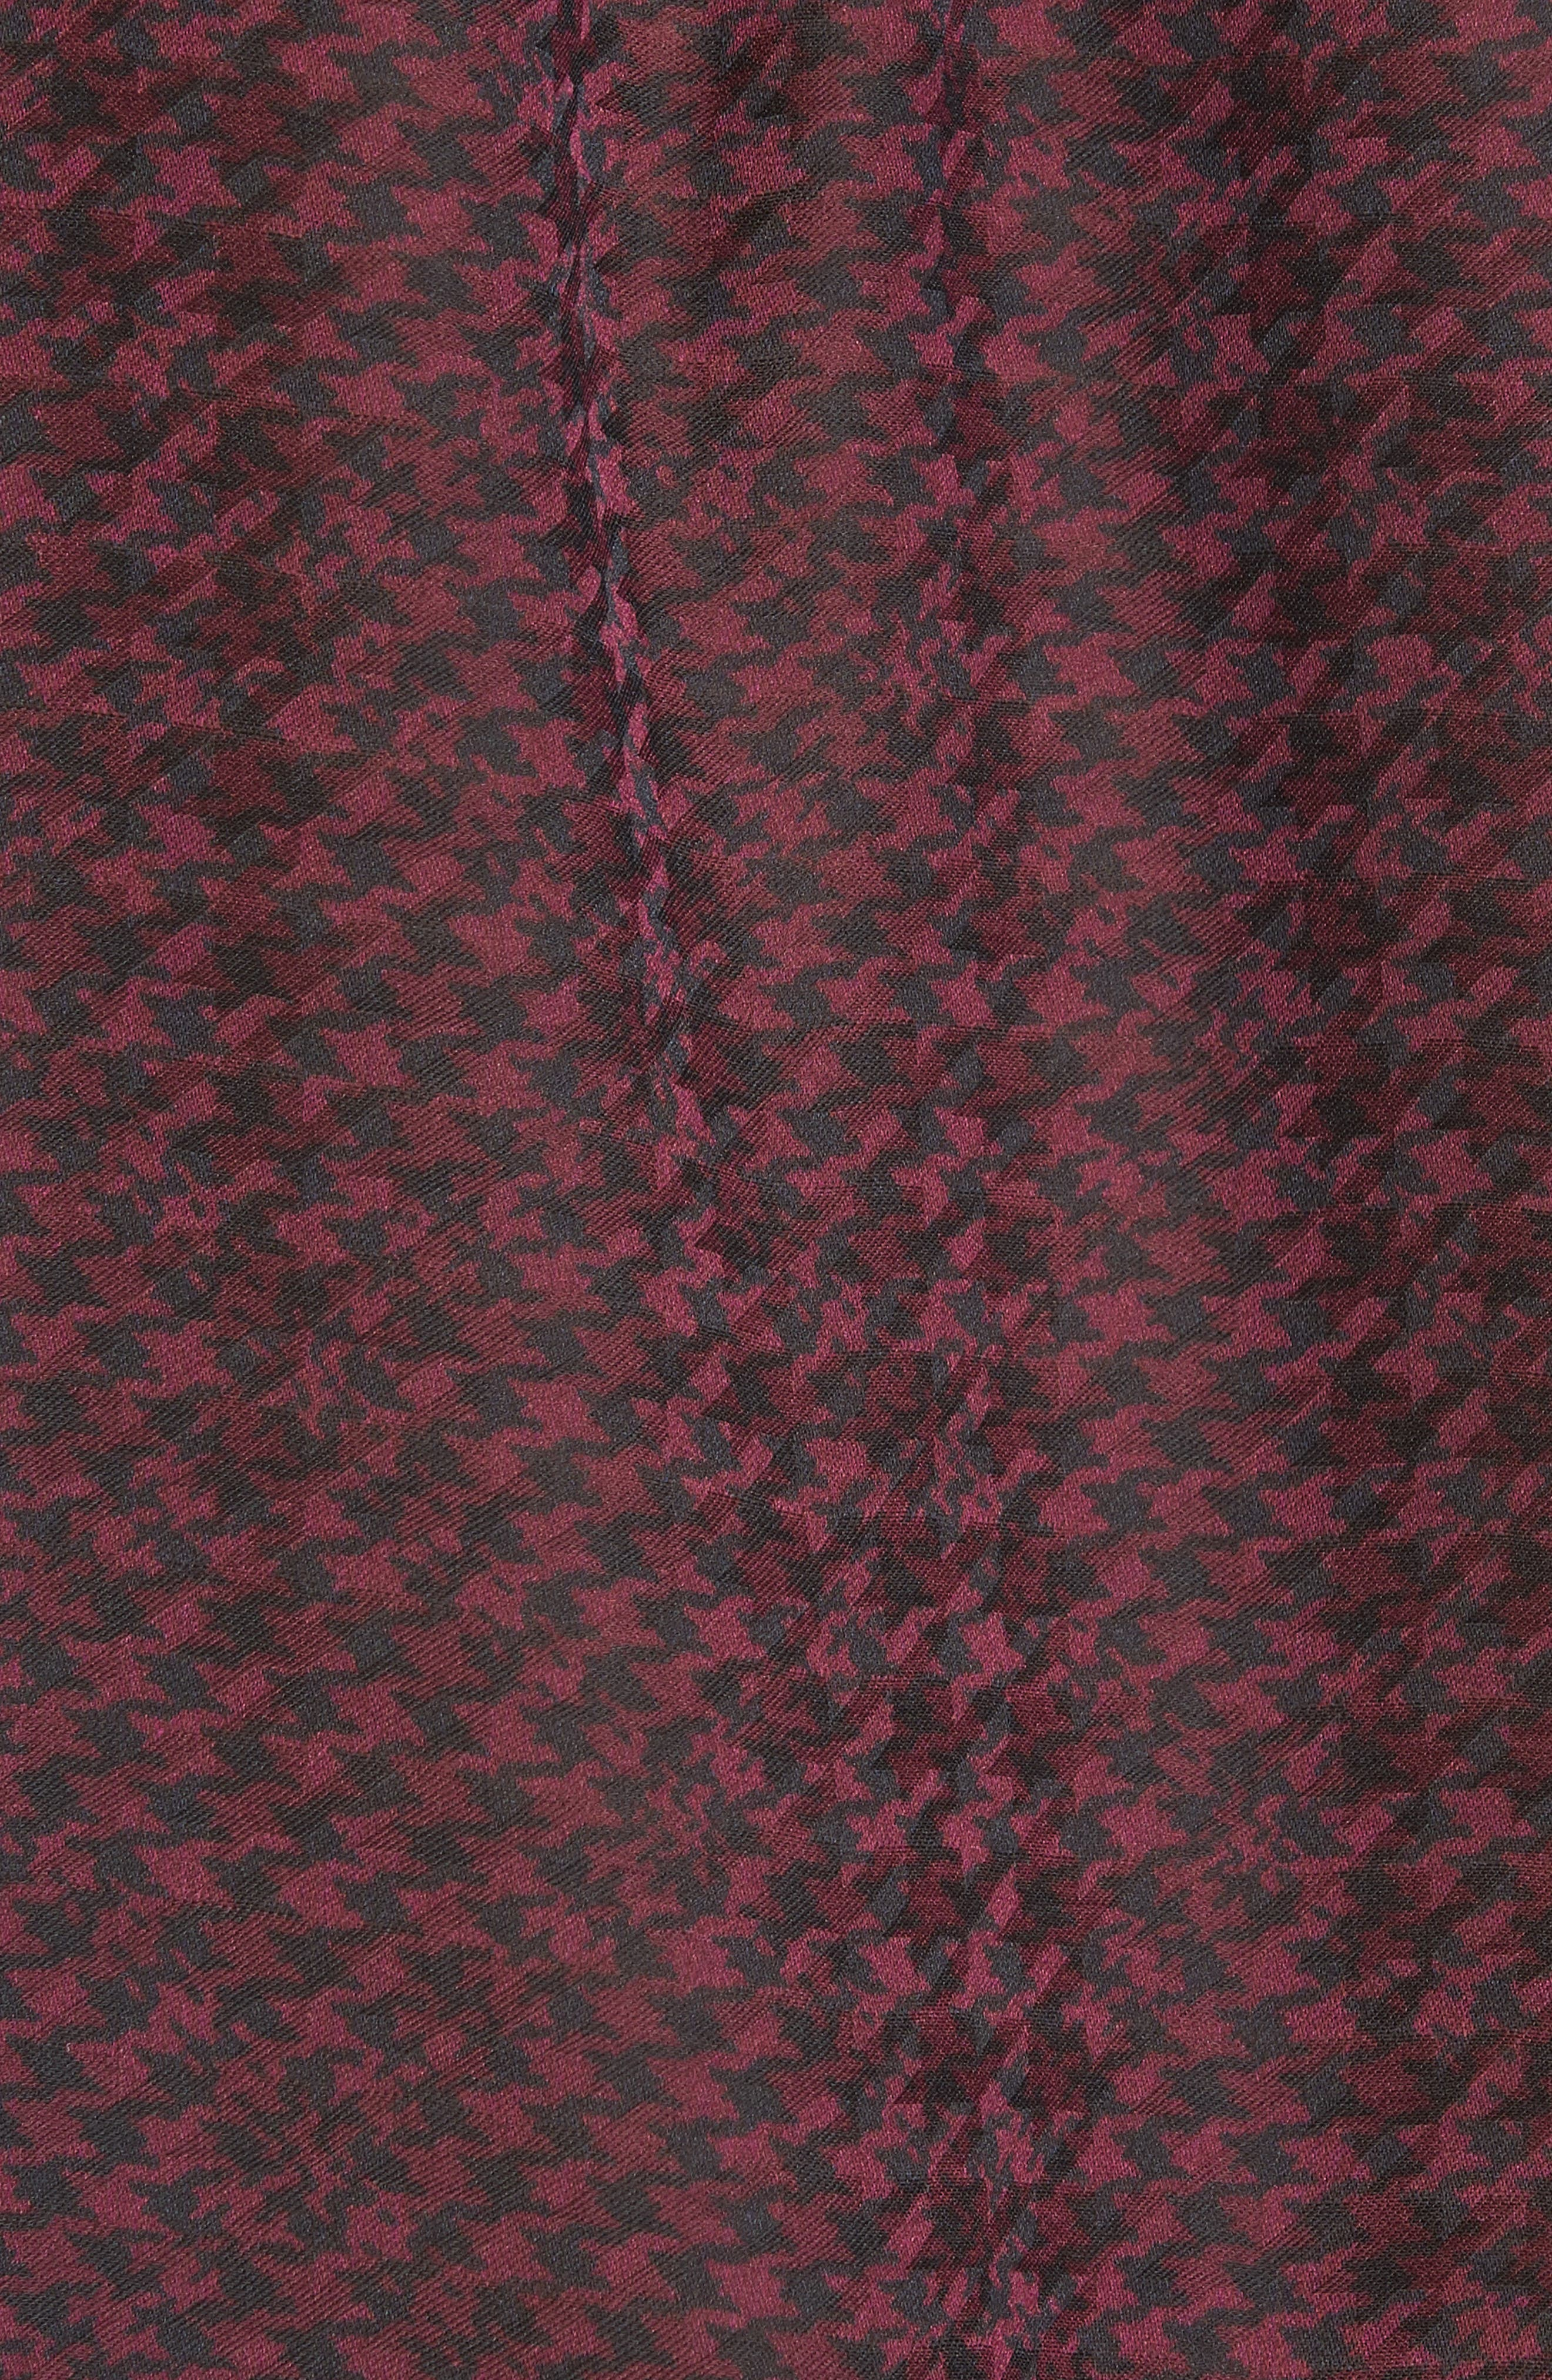 JOIE, Mintee Houndstooth Check Blouse, Alternate thumbnail 5, color, 501